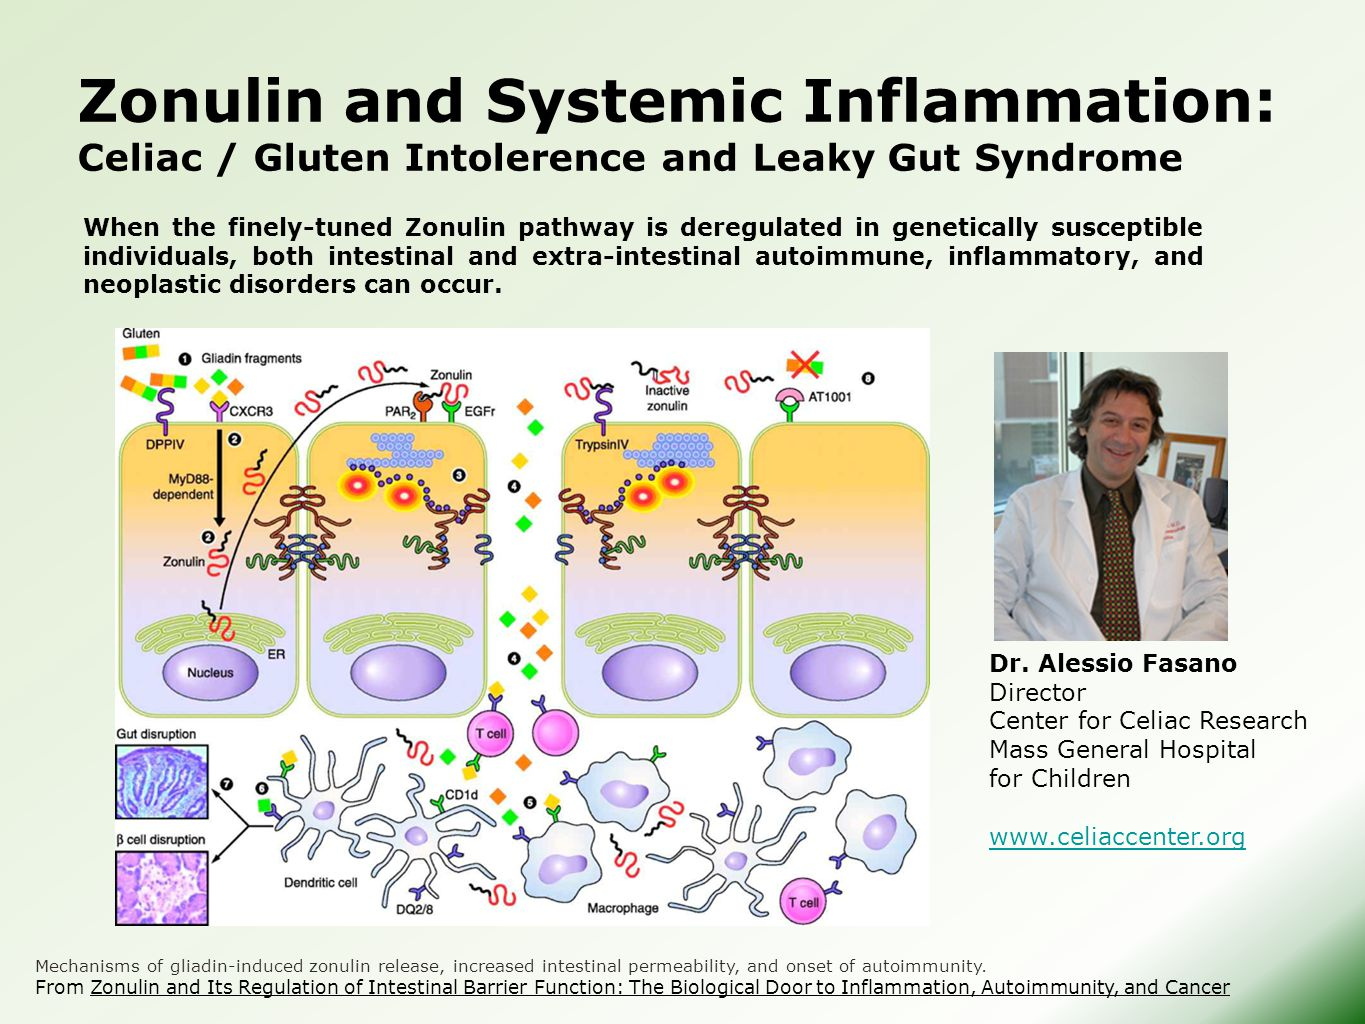 Zonulin and Systemic Inflammation: Celiac / Gluten Intolerence and Leaky Gut Syndrome